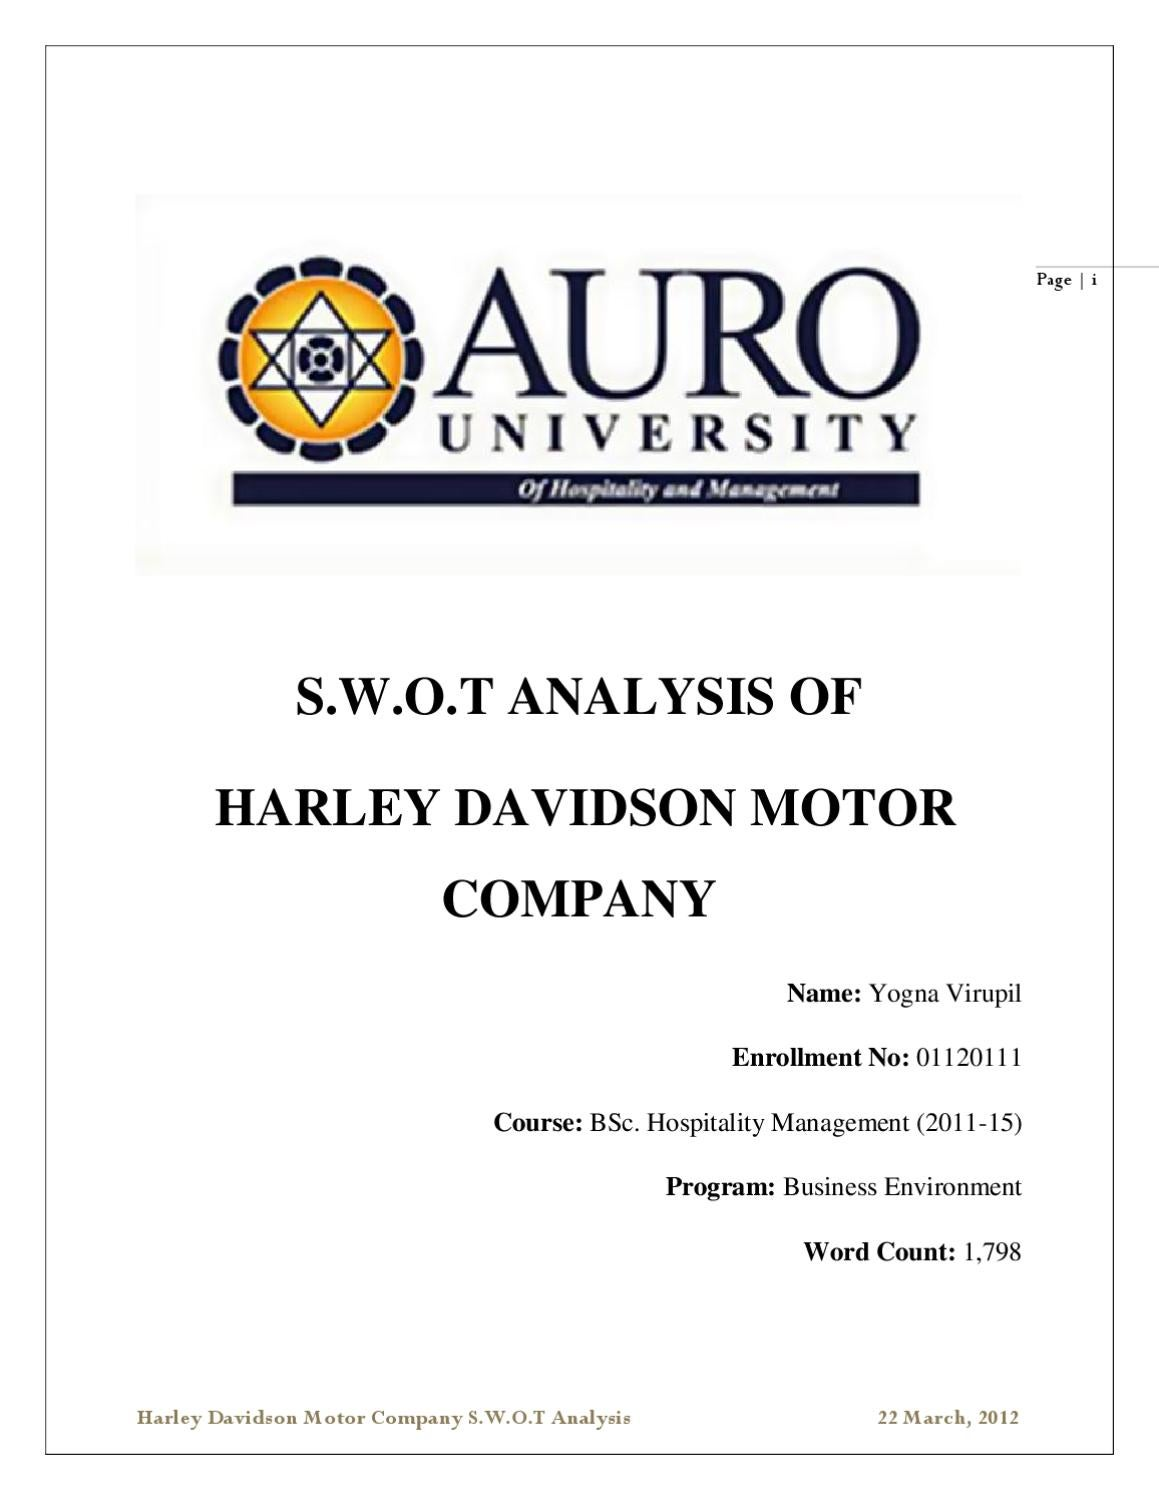 an analysis of the company profile of harley davidson motor company Harley-davidson motor co: enterprise software selection case solution,harley-davidson motor co: enterprise software selection case analysis, harley-davidson motor co: enterprise software.